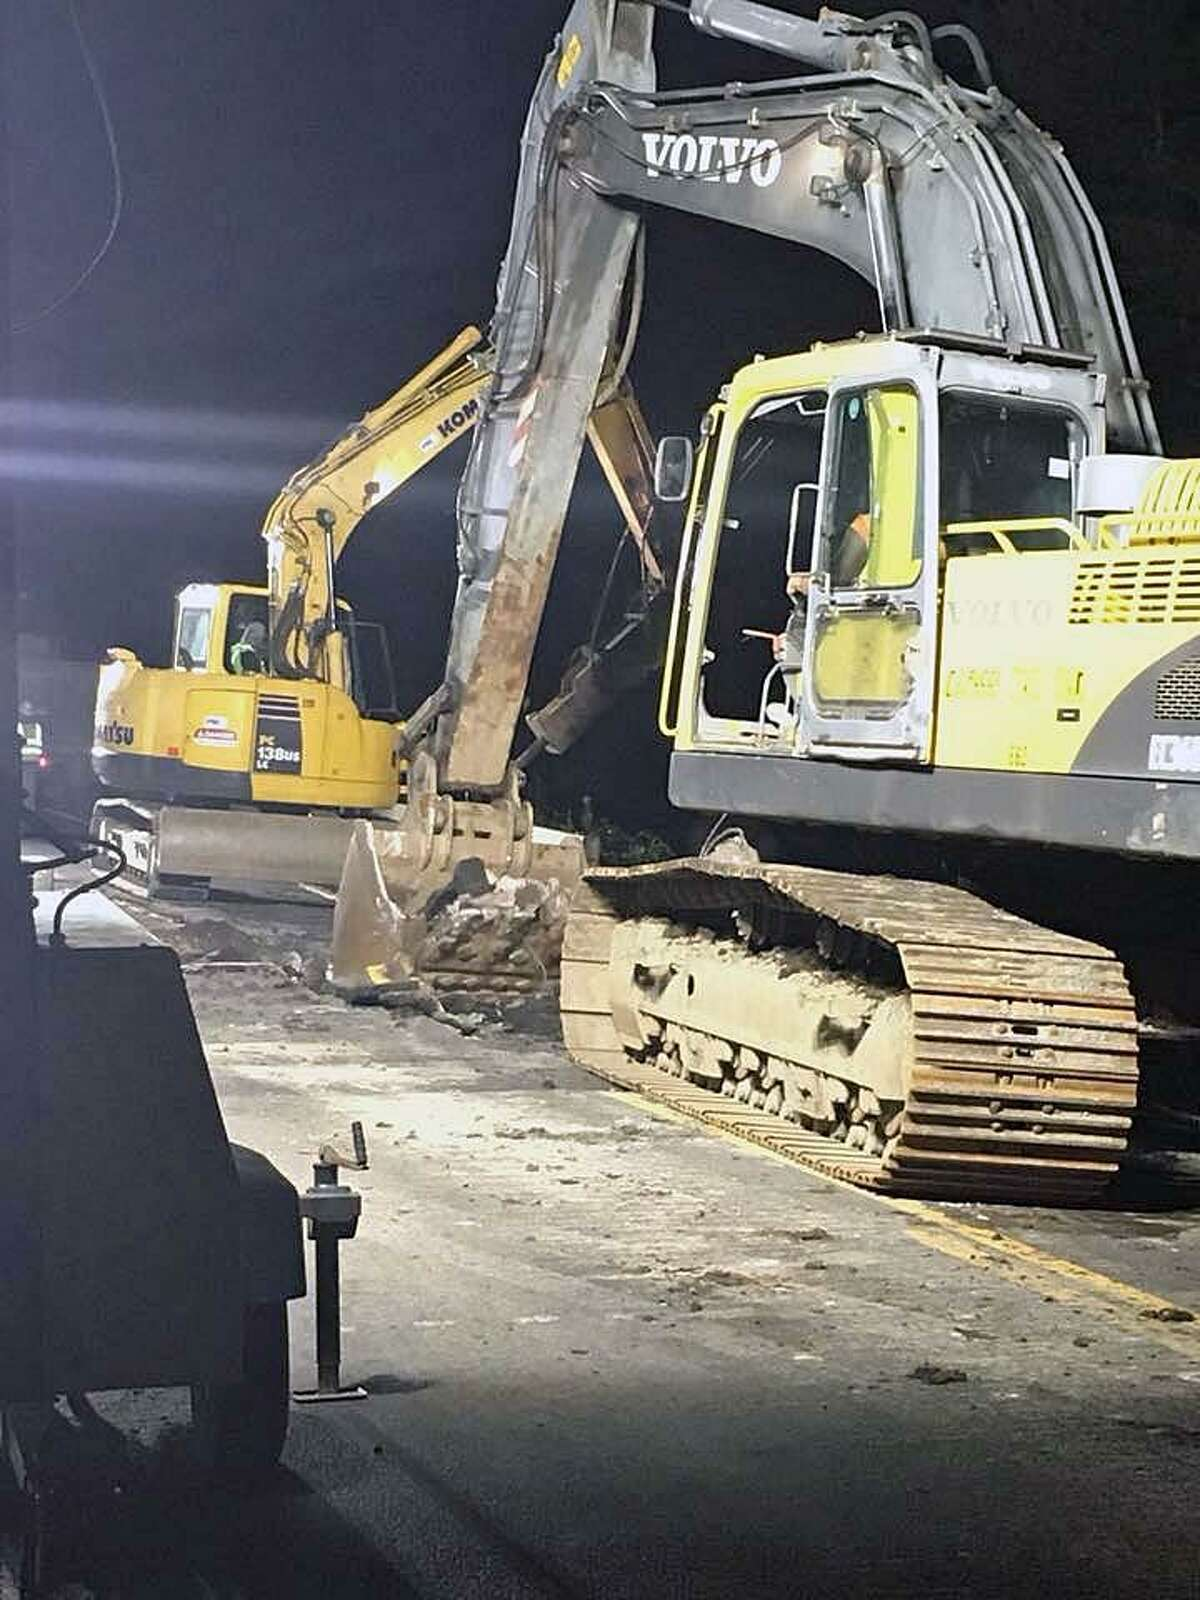 The construction project planned for Route 25 in Monroe, Conn., is underway and making progress, police said on Aug. 25, 2018.